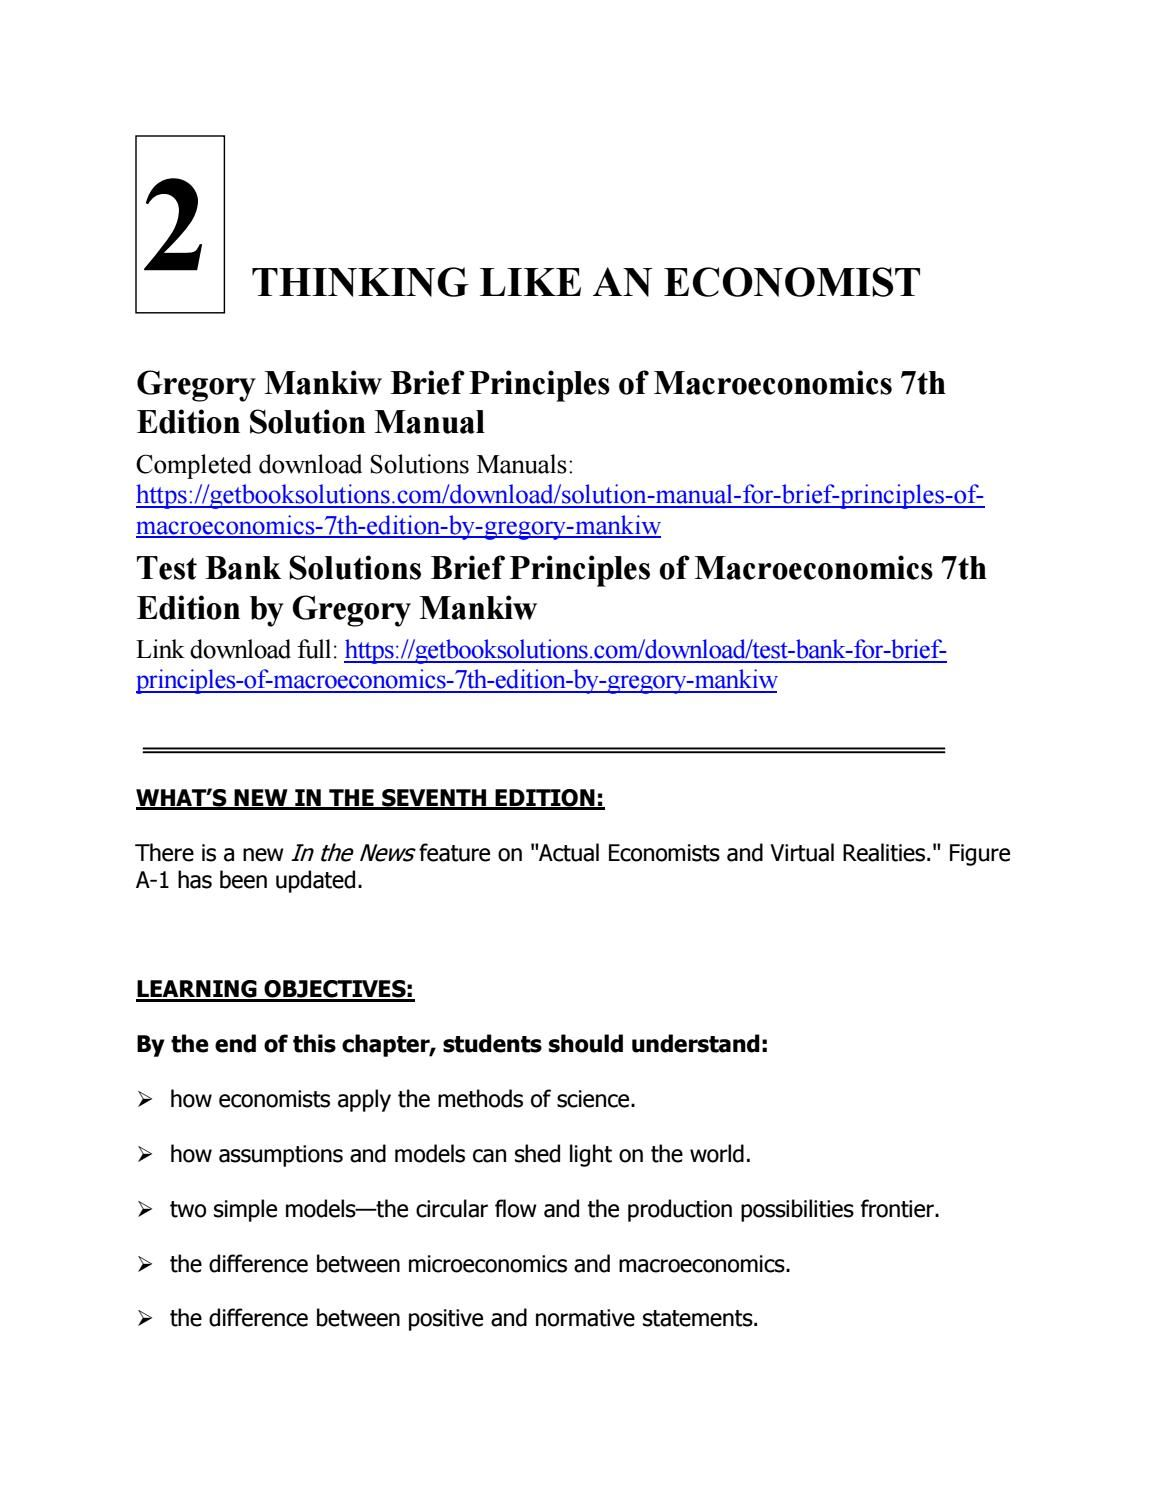 MANKIW MACROECONOMICS 7TH DOWNLOAD